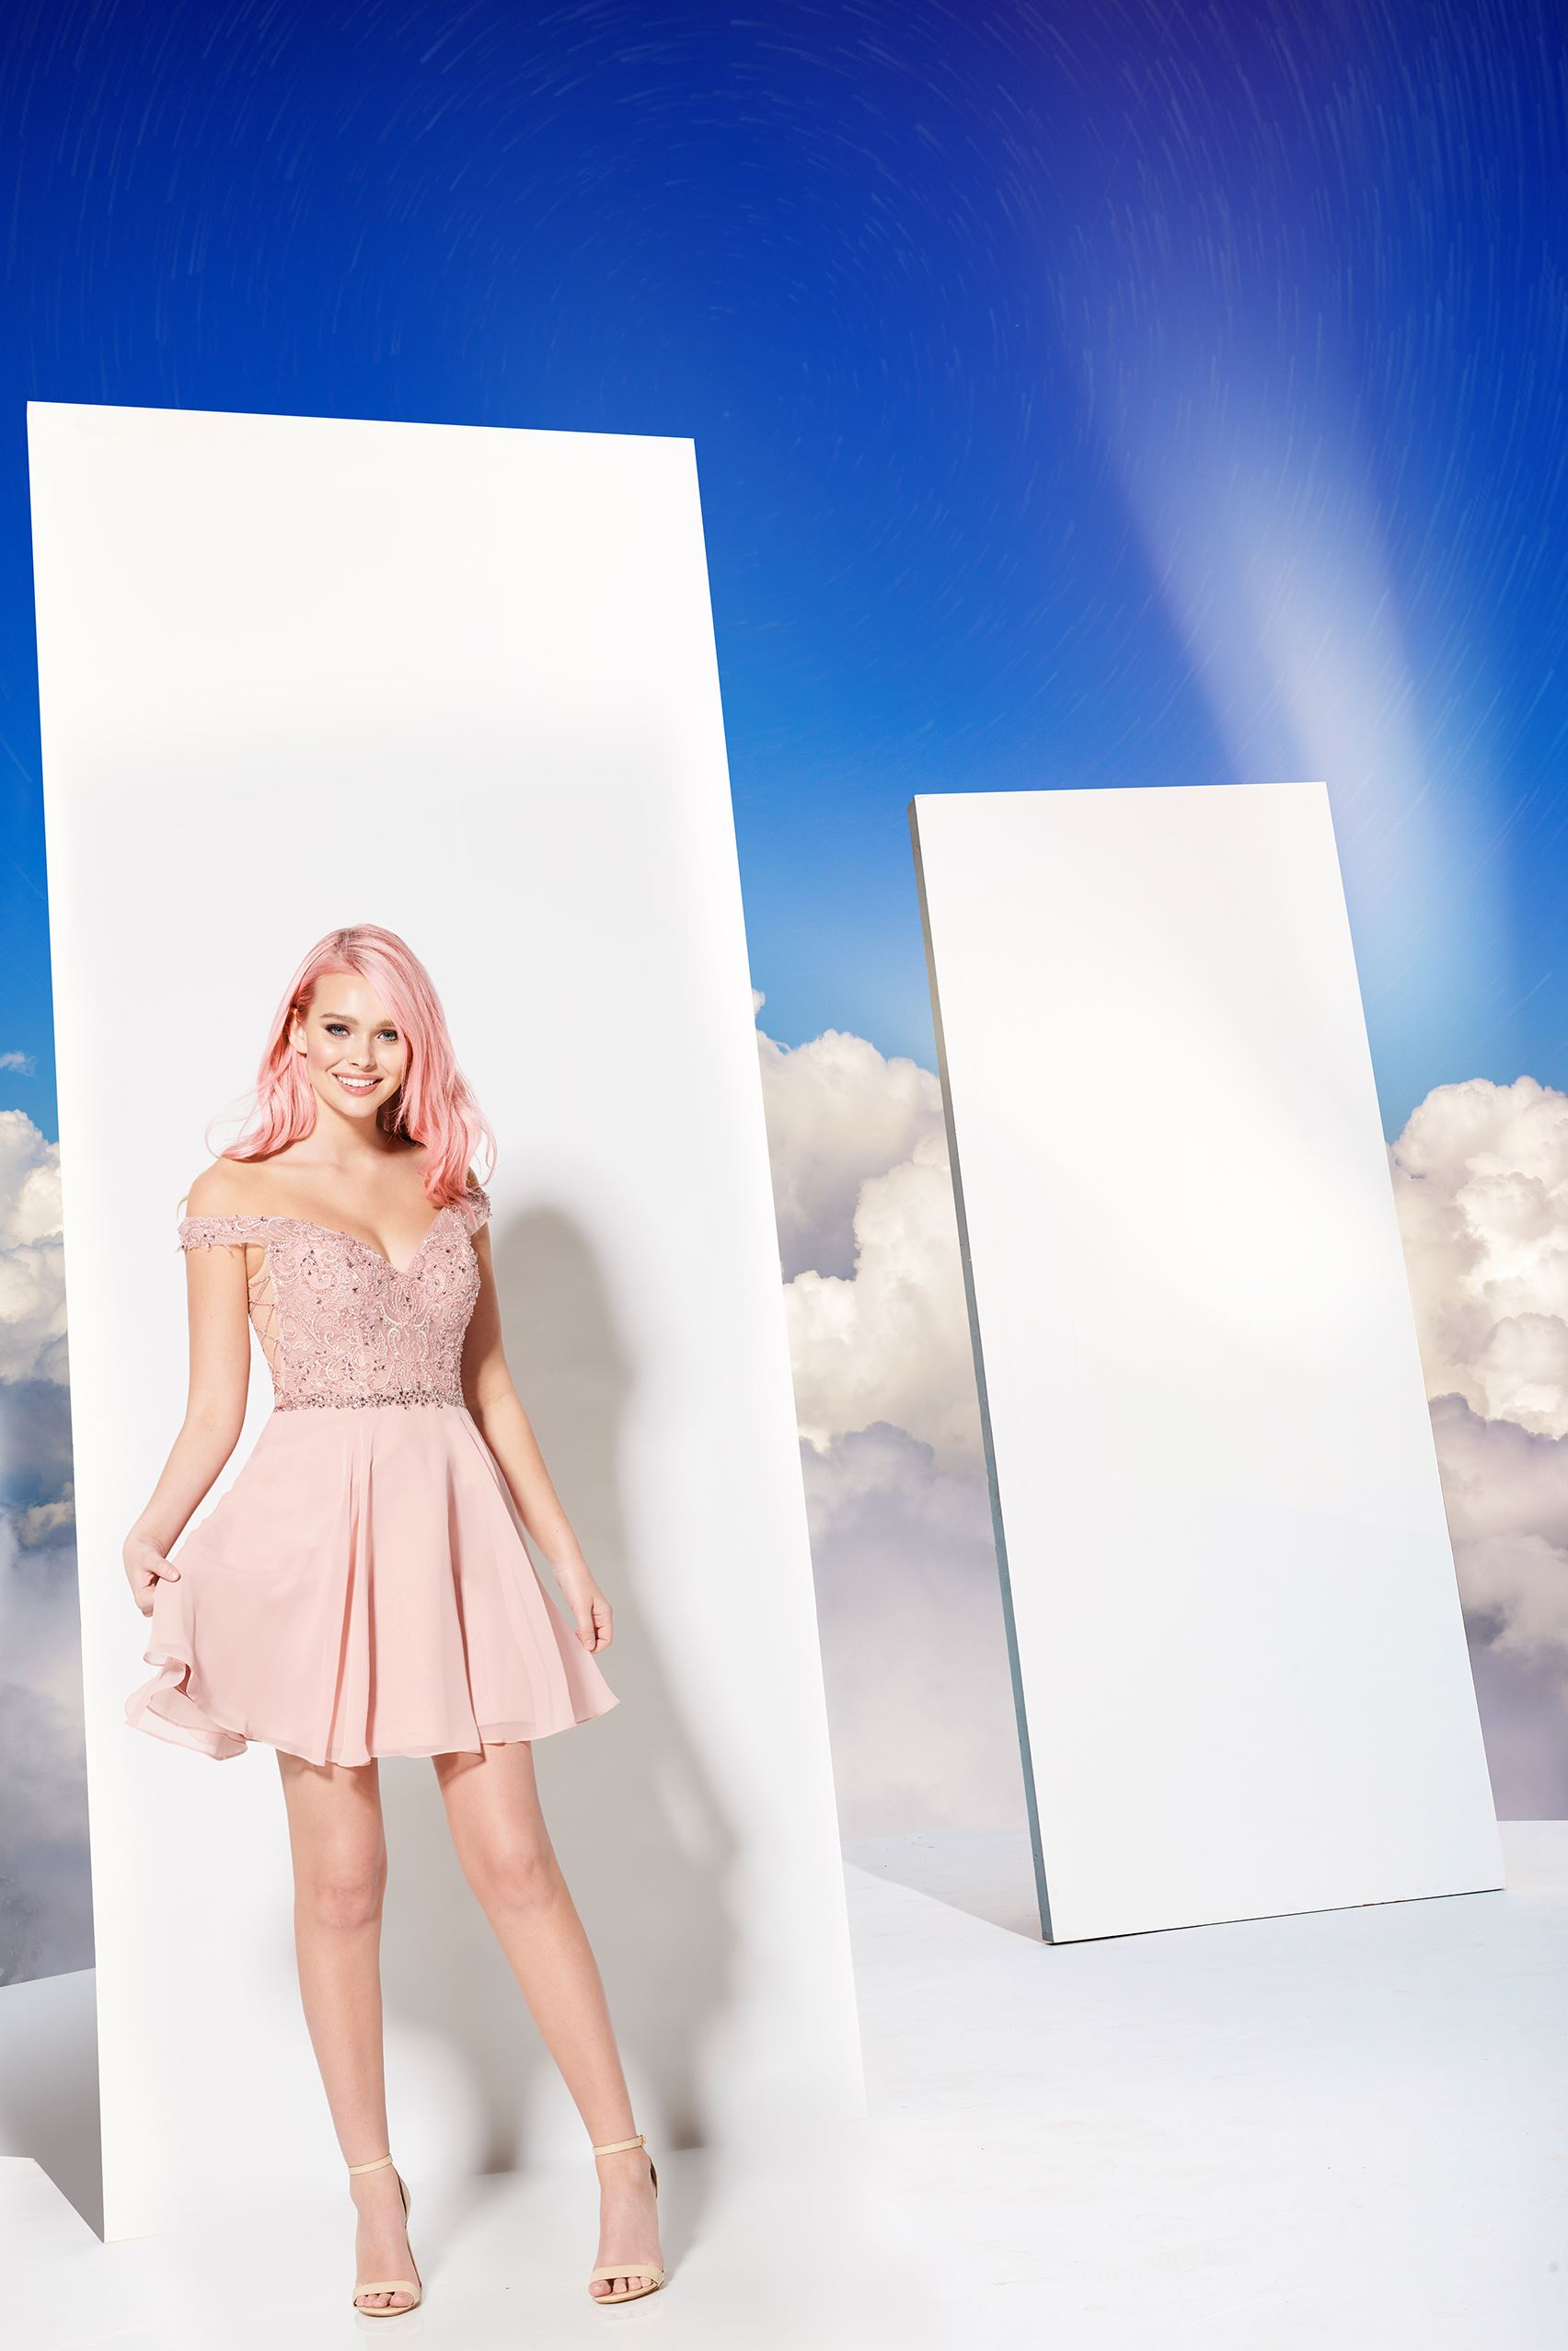 Model with pink hair in short pink dress in front of clouds